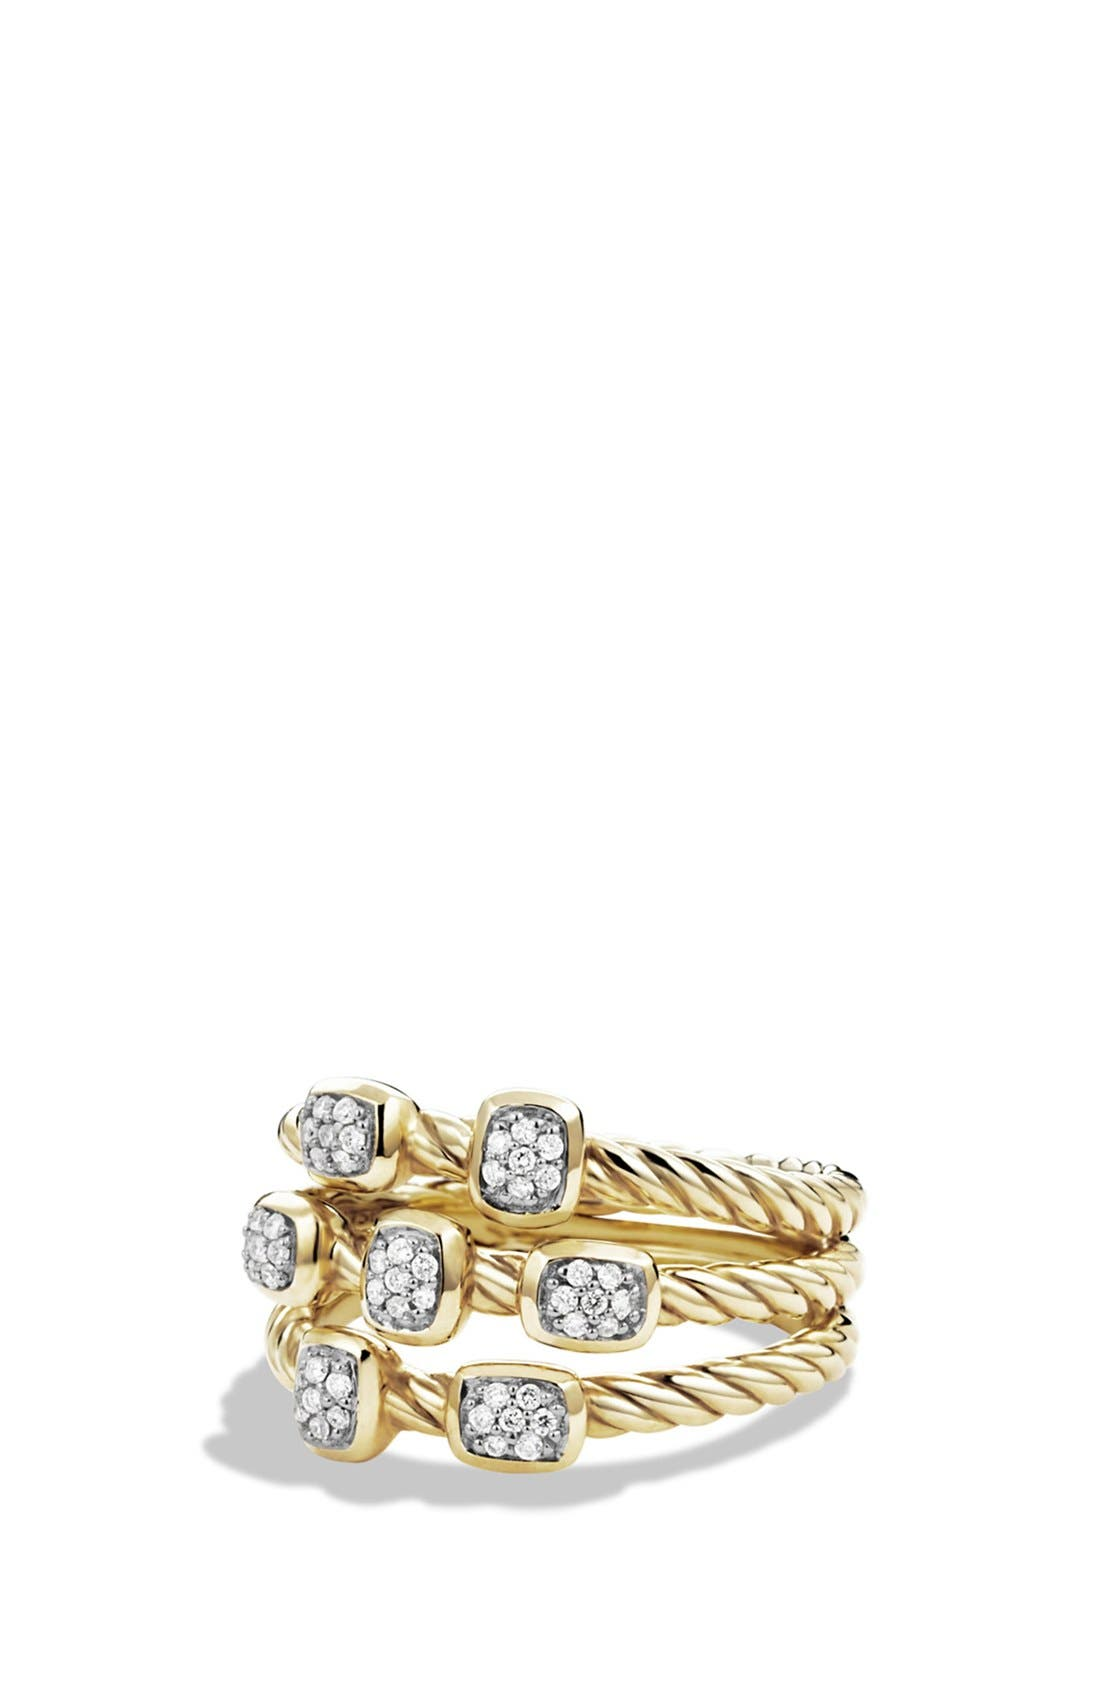 David Yurman 'Confetti' Ring with Diamonds in Gold